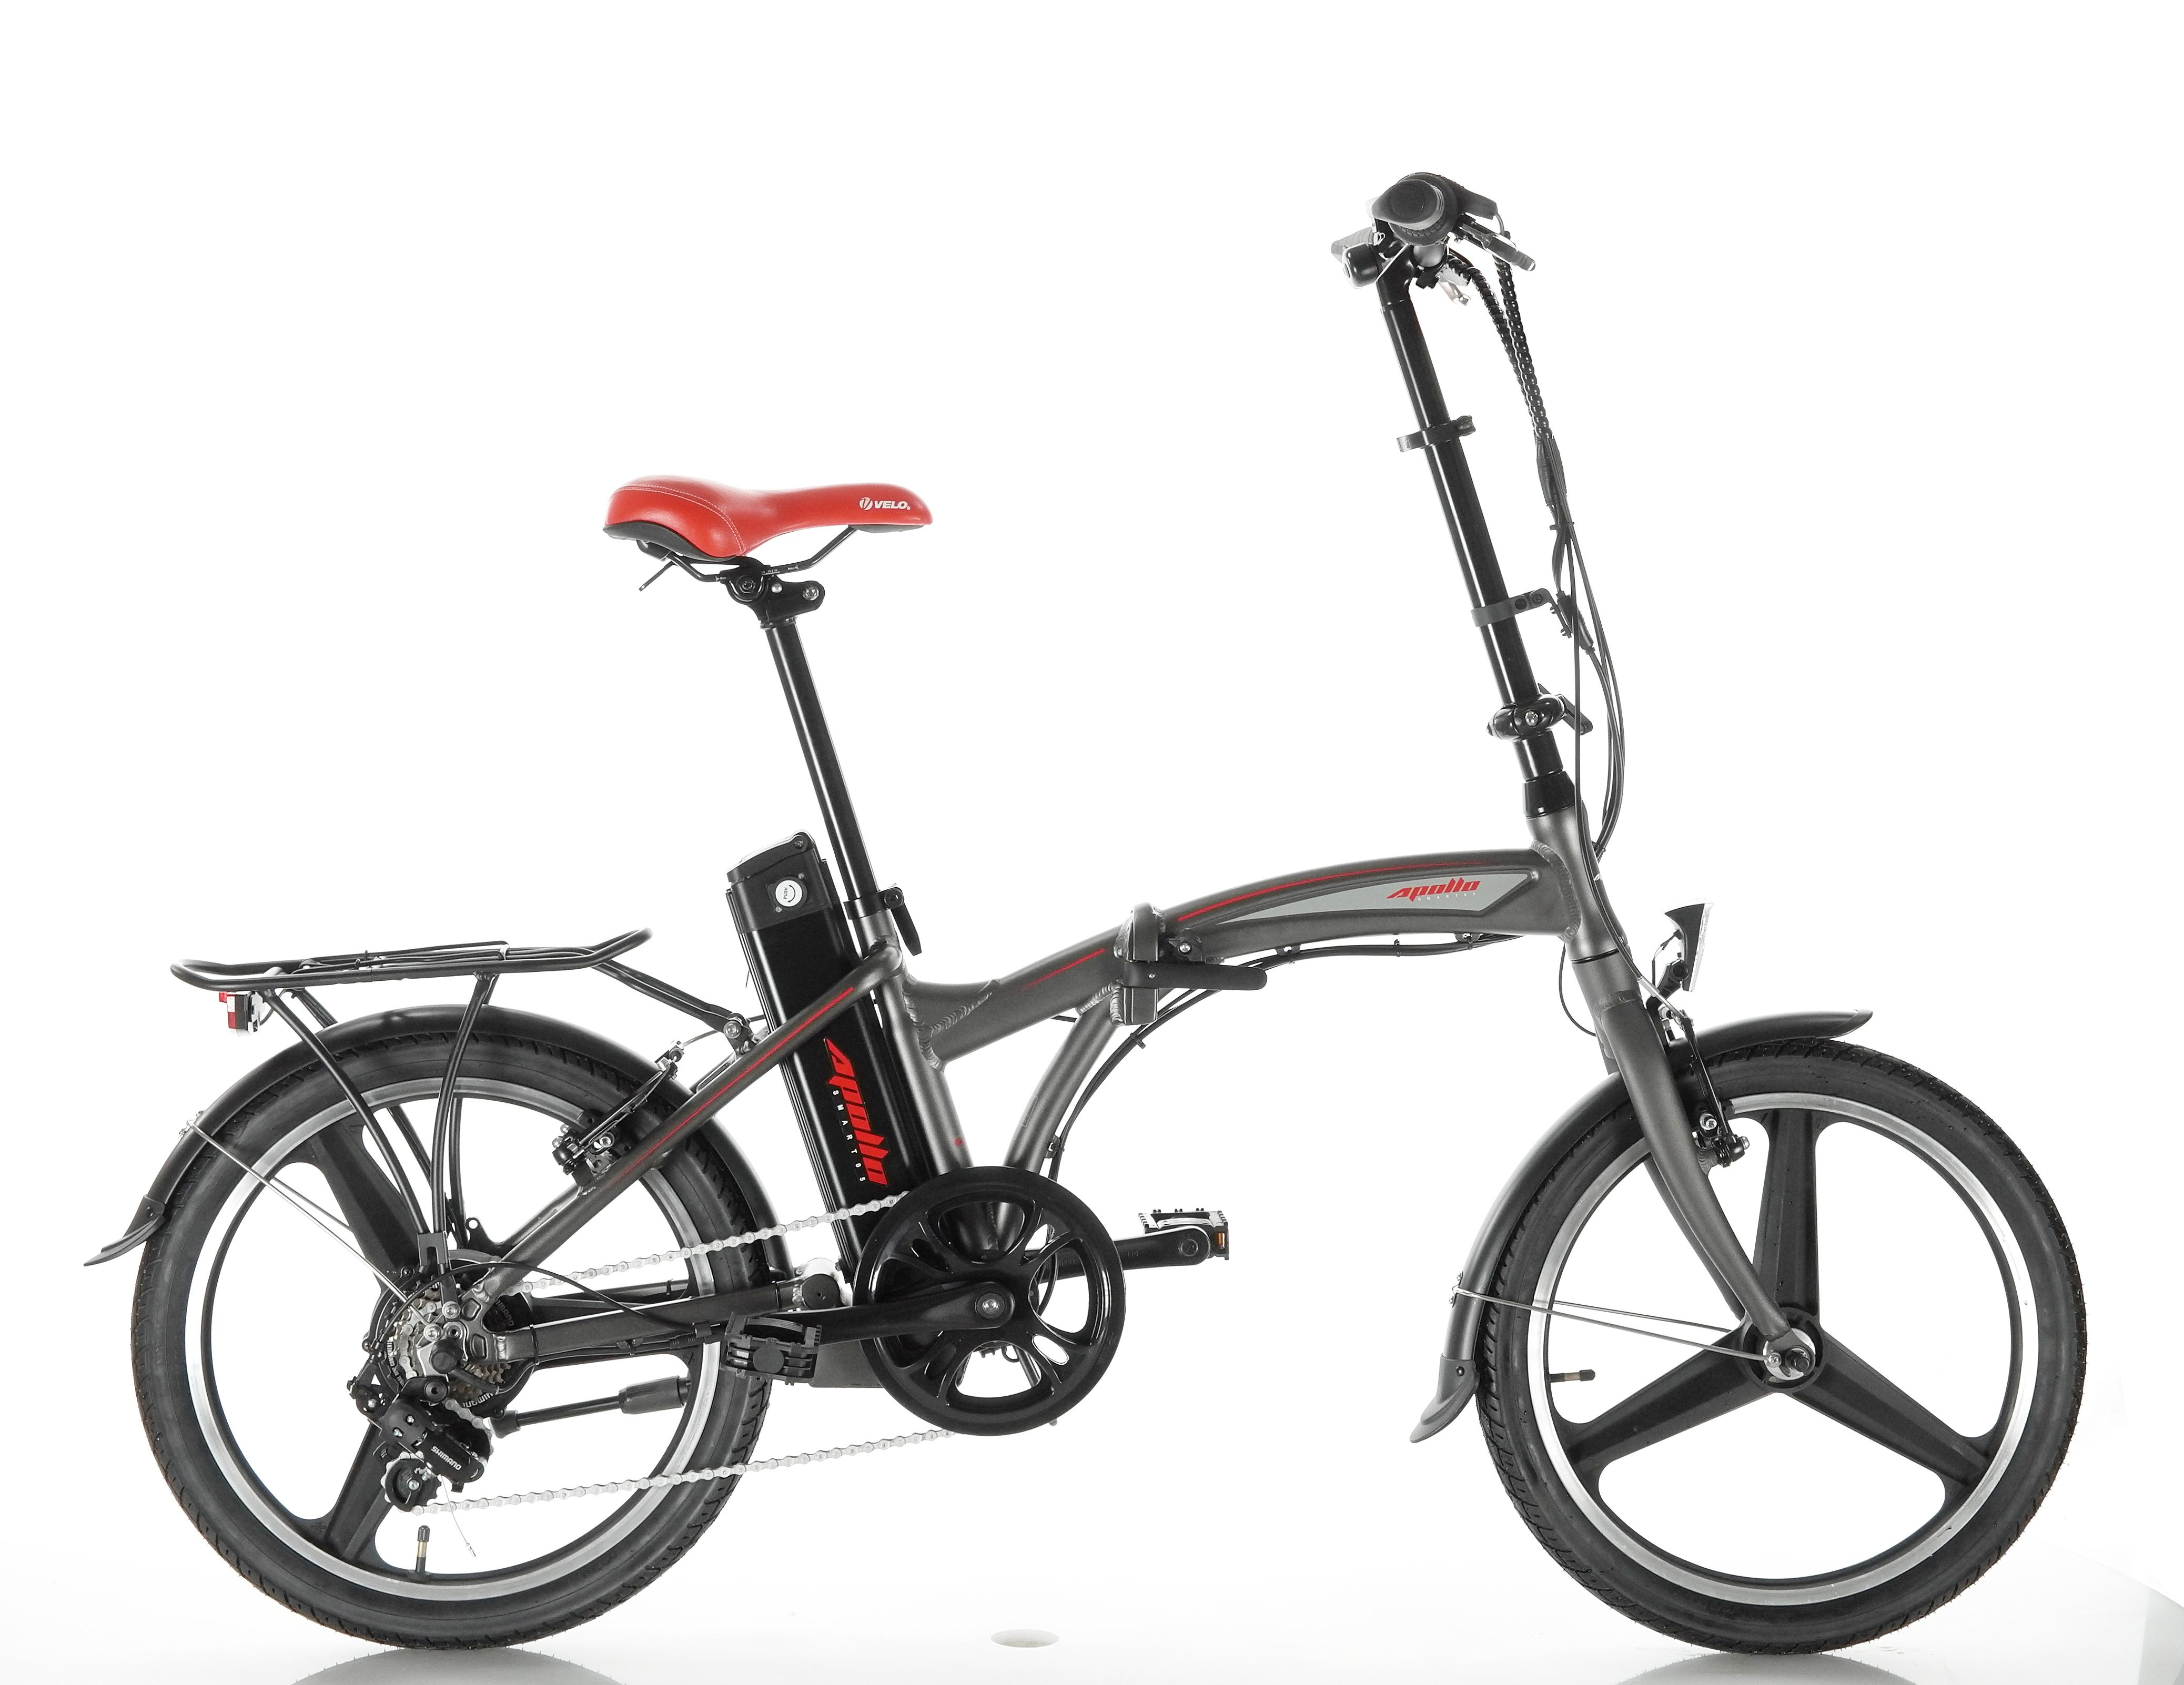 Smart 05 'City' Folding Electric Bicycle